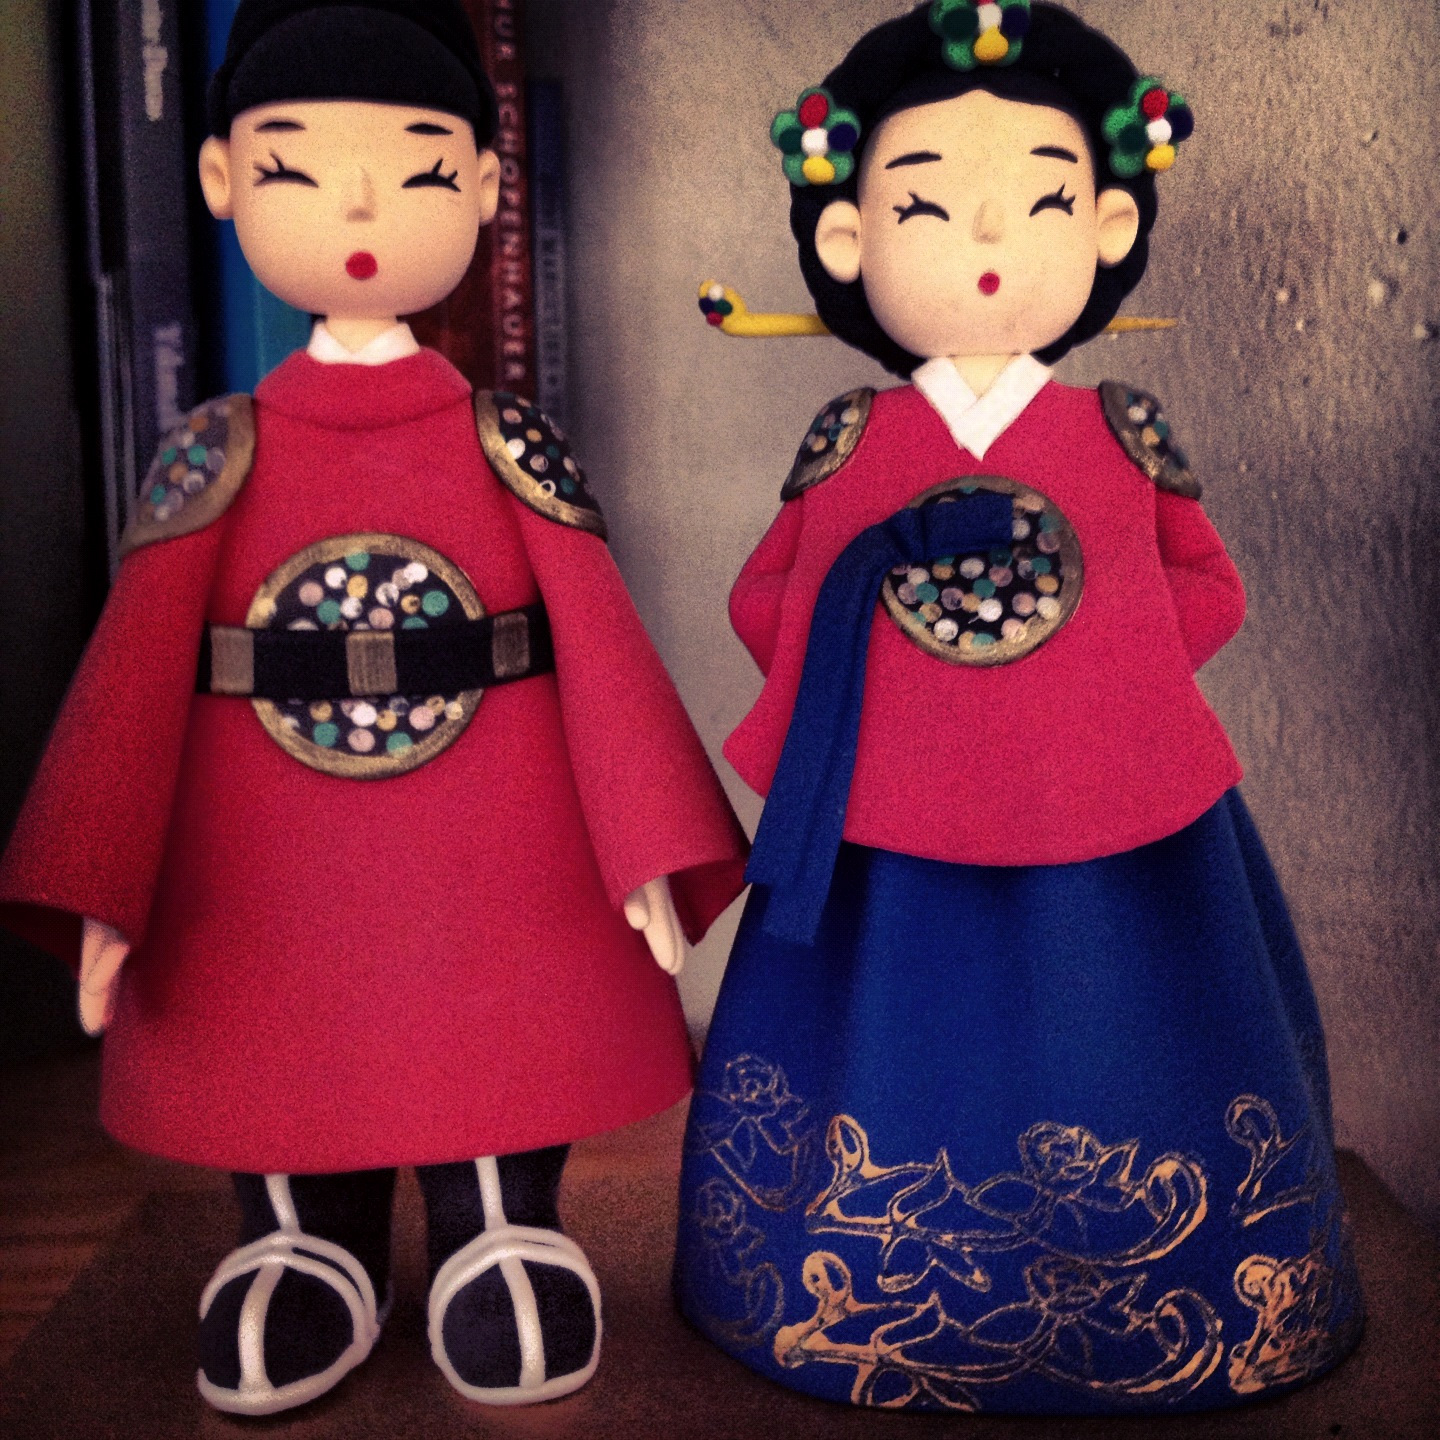 Traditional Japanese dolls as accessory in the loft